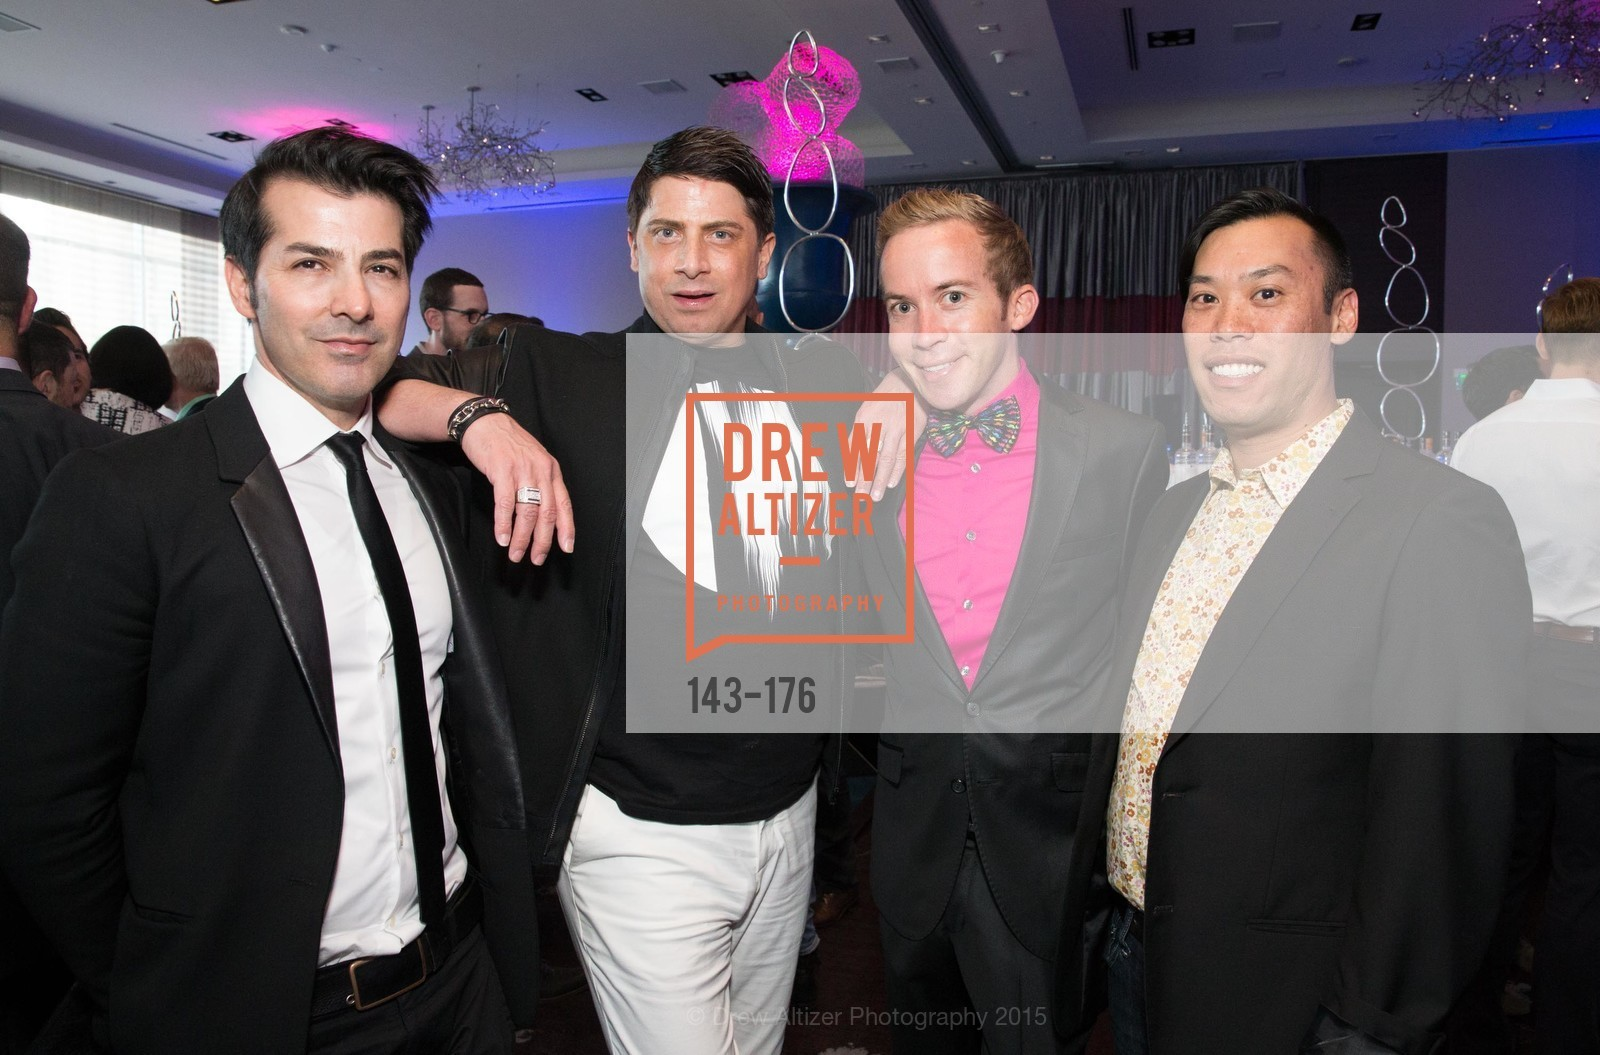 Bacca de Silva, Aubrey Brewster, Skye Patterson, Alvin Ma, VIP Pride Celebration 2015, St. Regis, June 18th, 2015,Drew Altizer, Drew Altizer Photography, full-service agency, private events, San Francisco photographer, photographer california